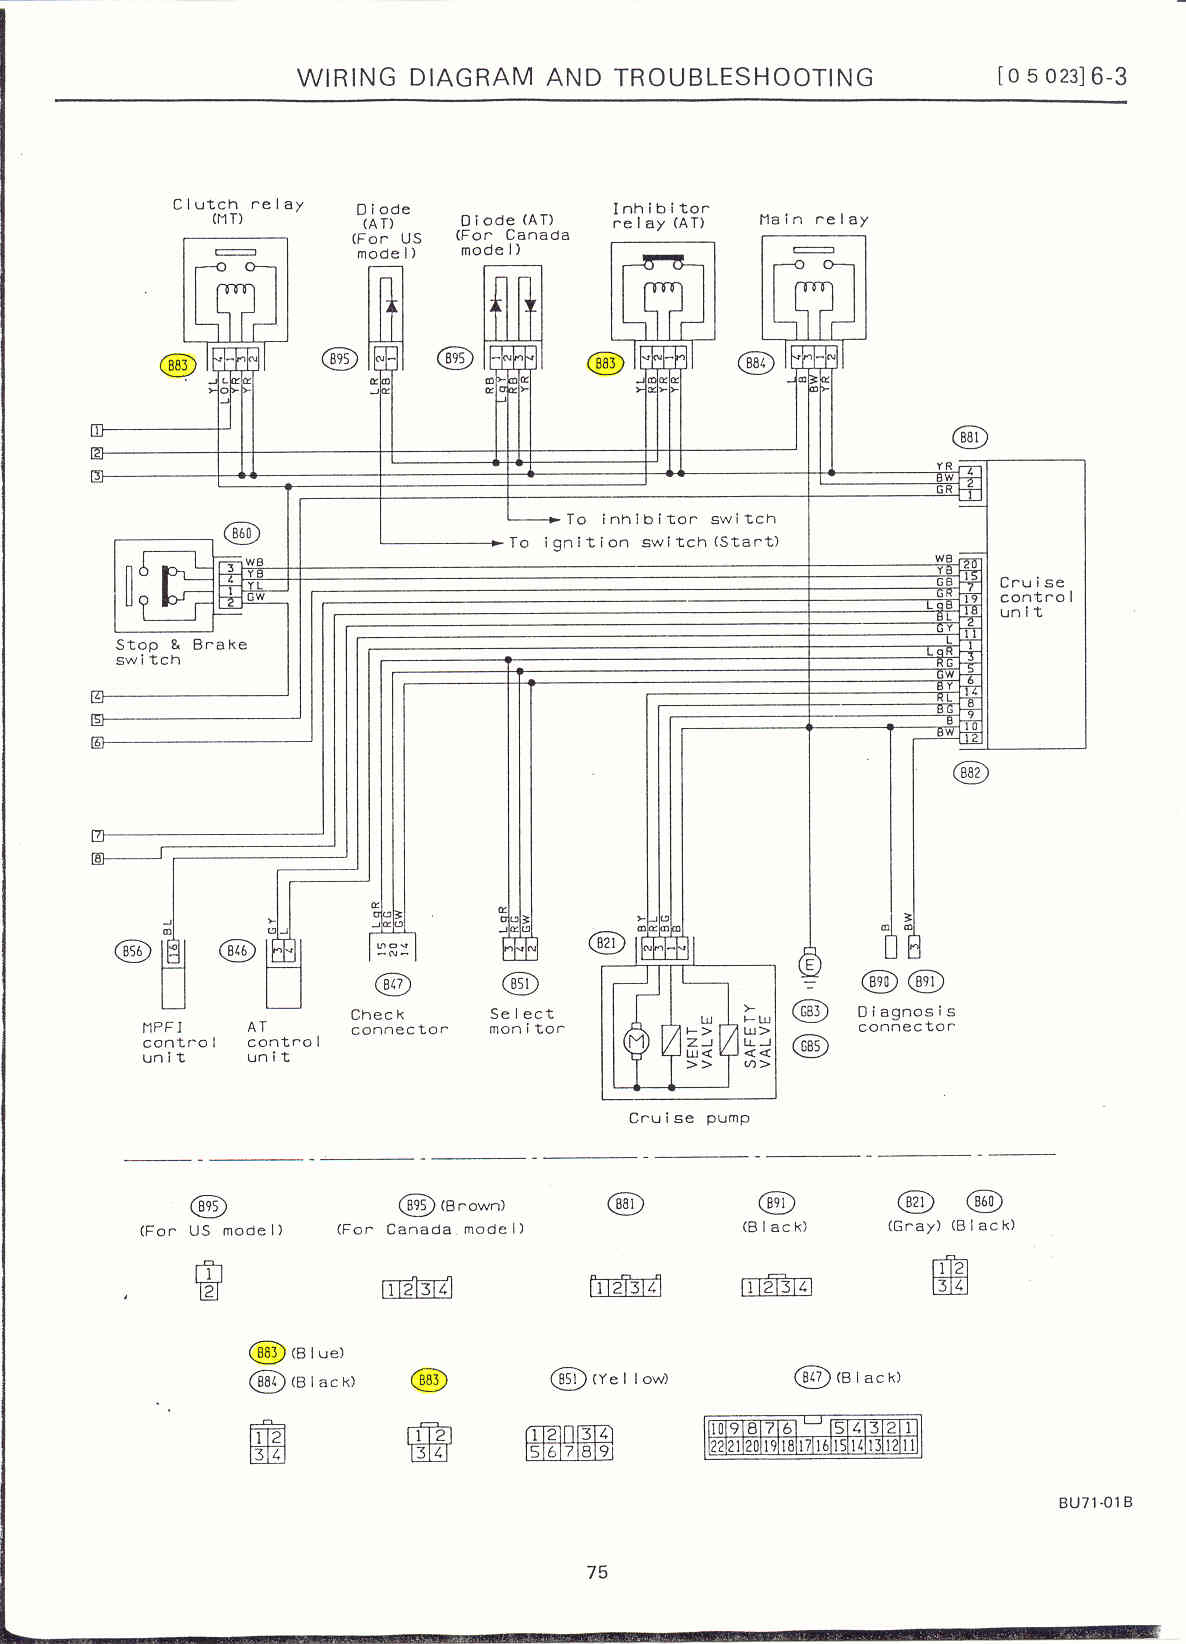 2001 subaru legacy gt engine diagram 36 wiring diagram Subaru ECM Reprogramming Subaru ECM Problems